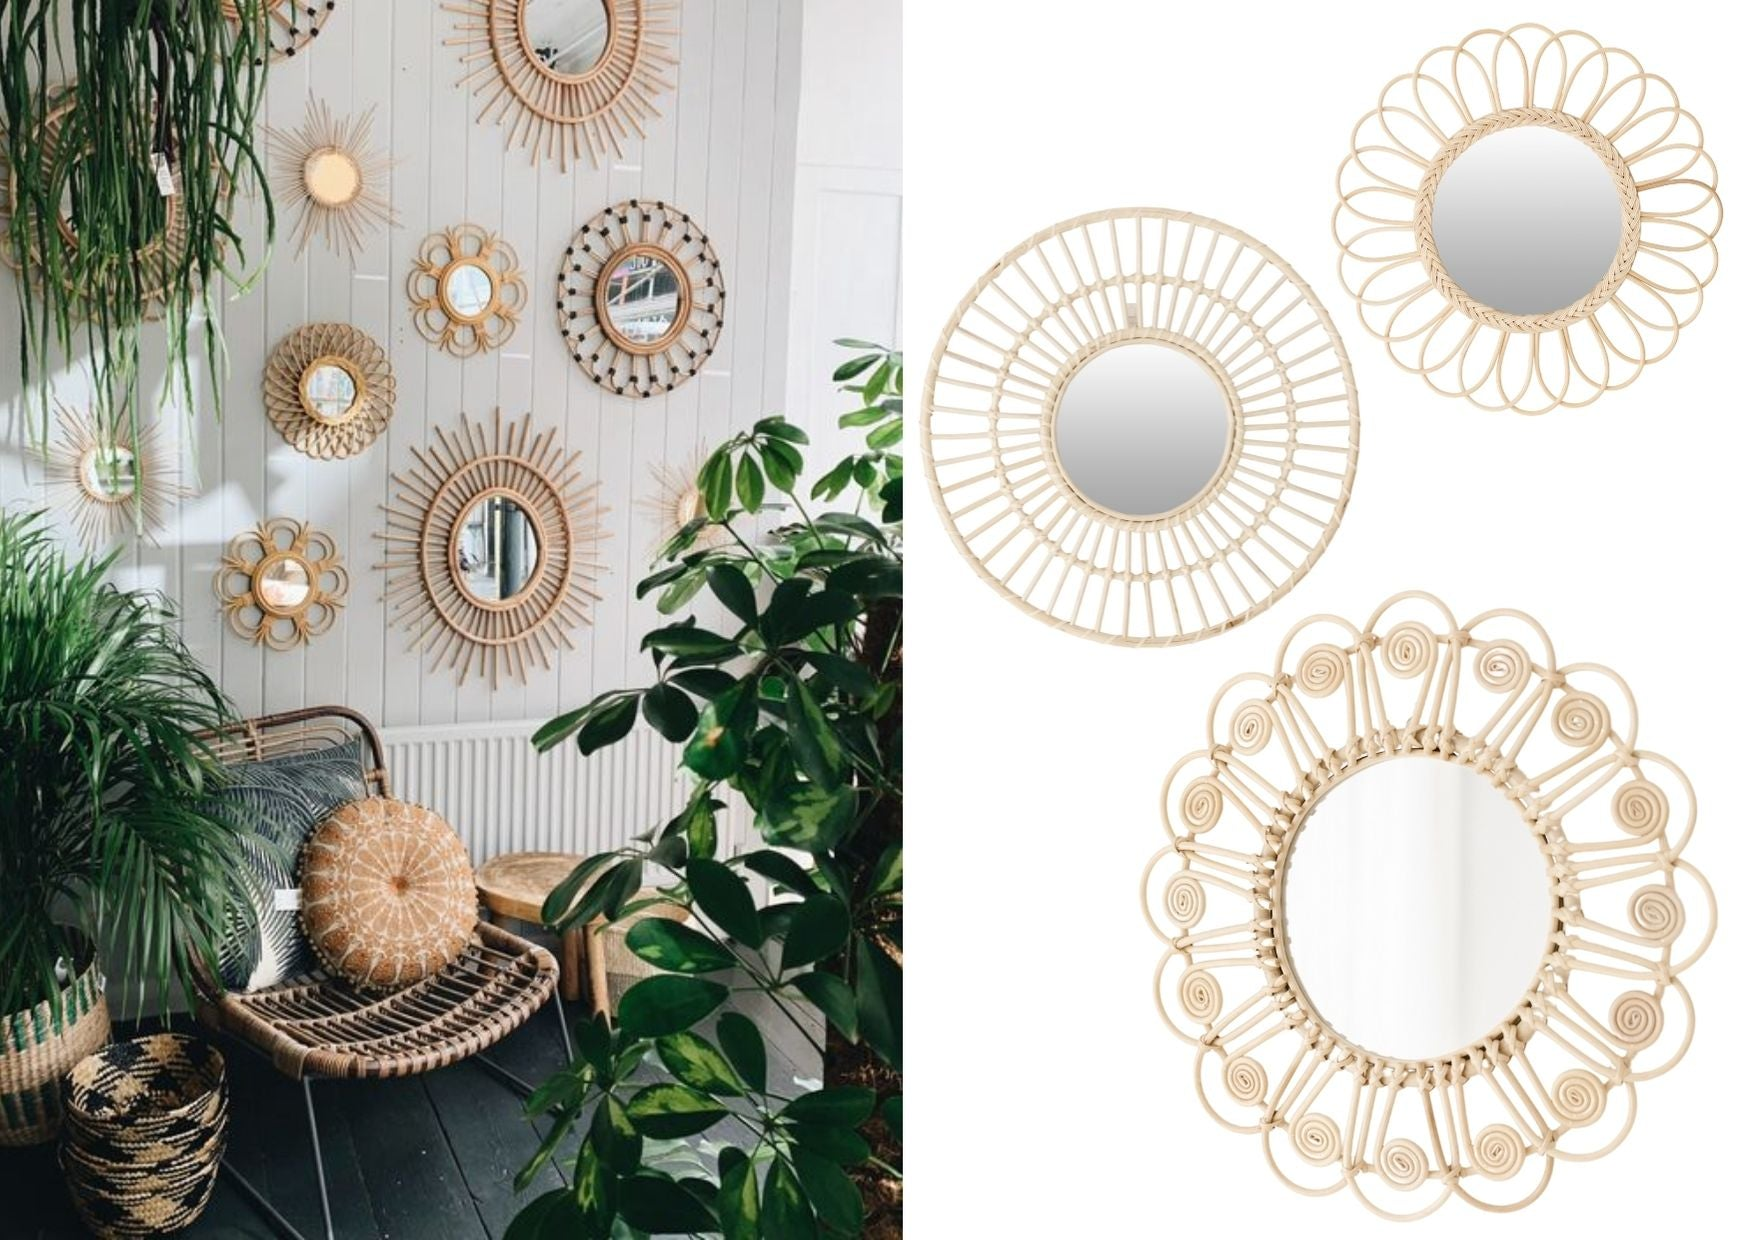 Hunter & Nomad - How to - Wall Styling - Odd Numbers